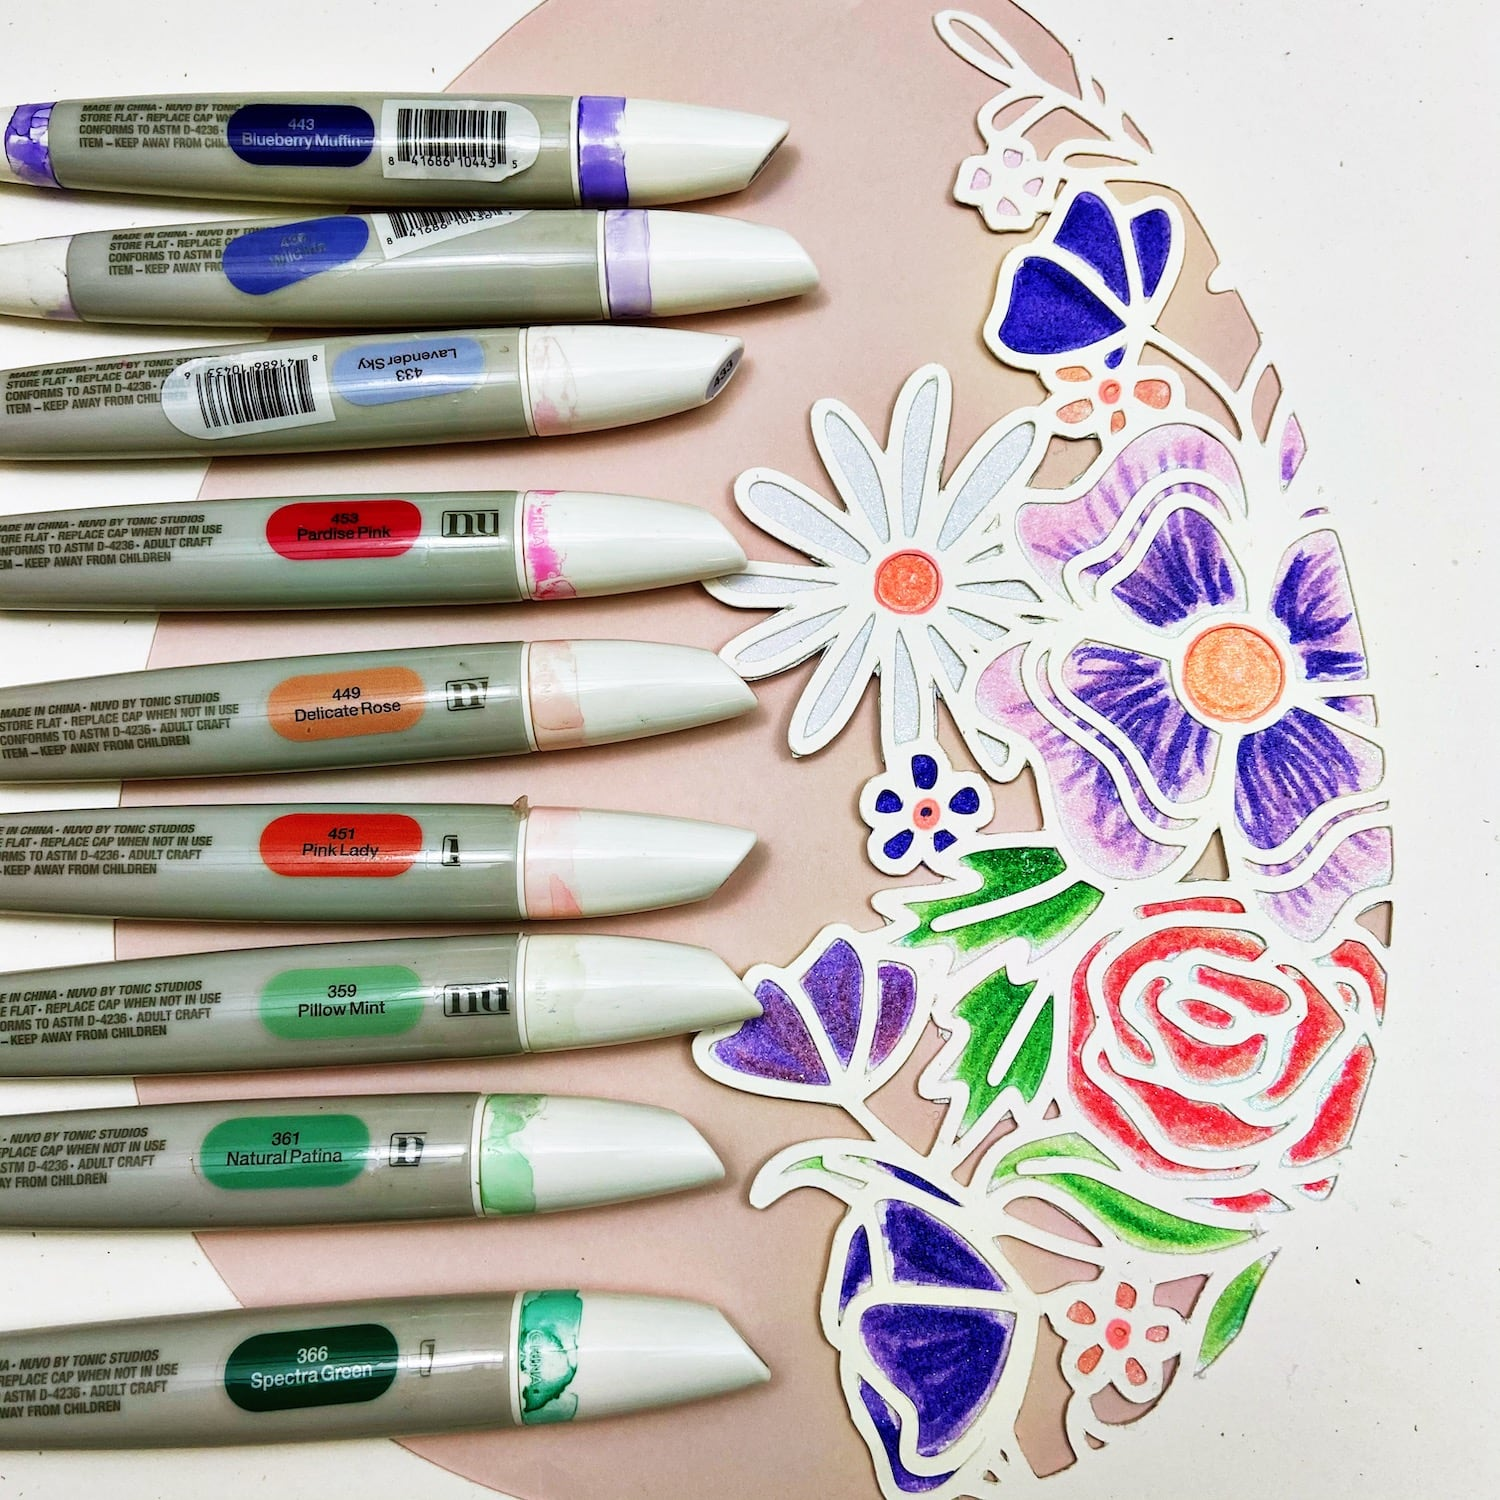 Coloring glitter paper with alcohol markers